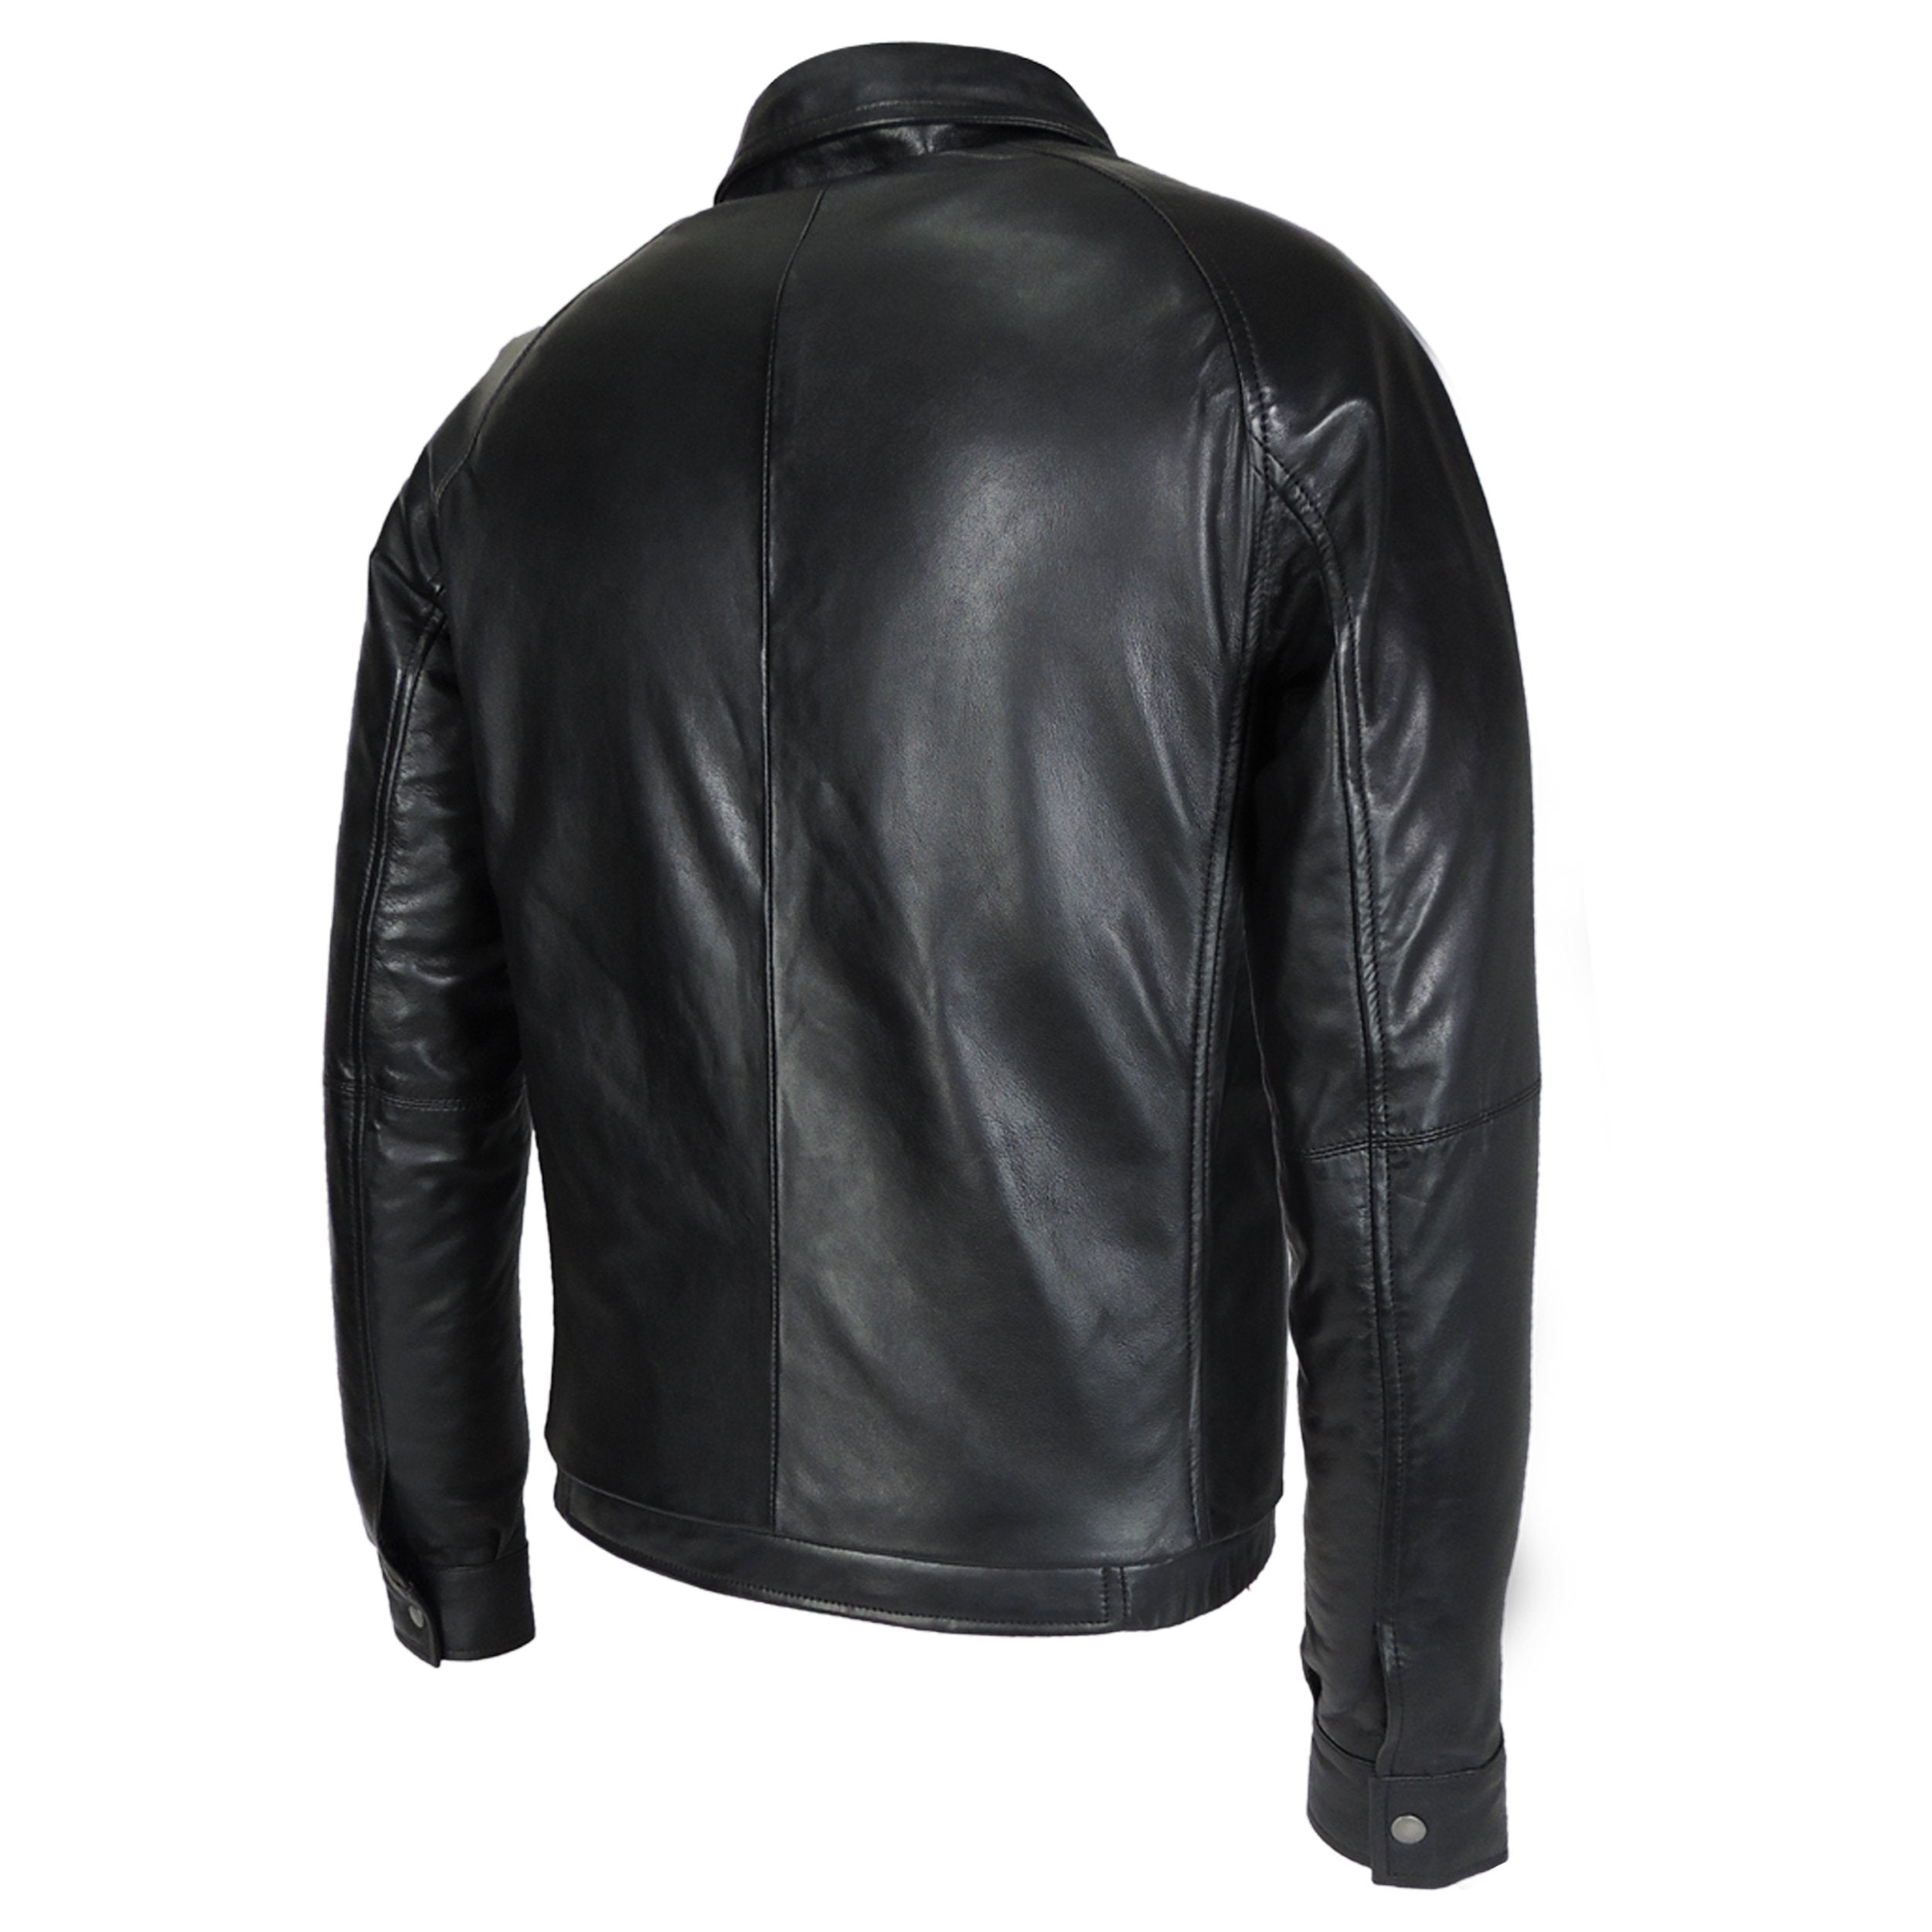 Leather Jacket - Dali Mens Leather Jacket With Filler Lining